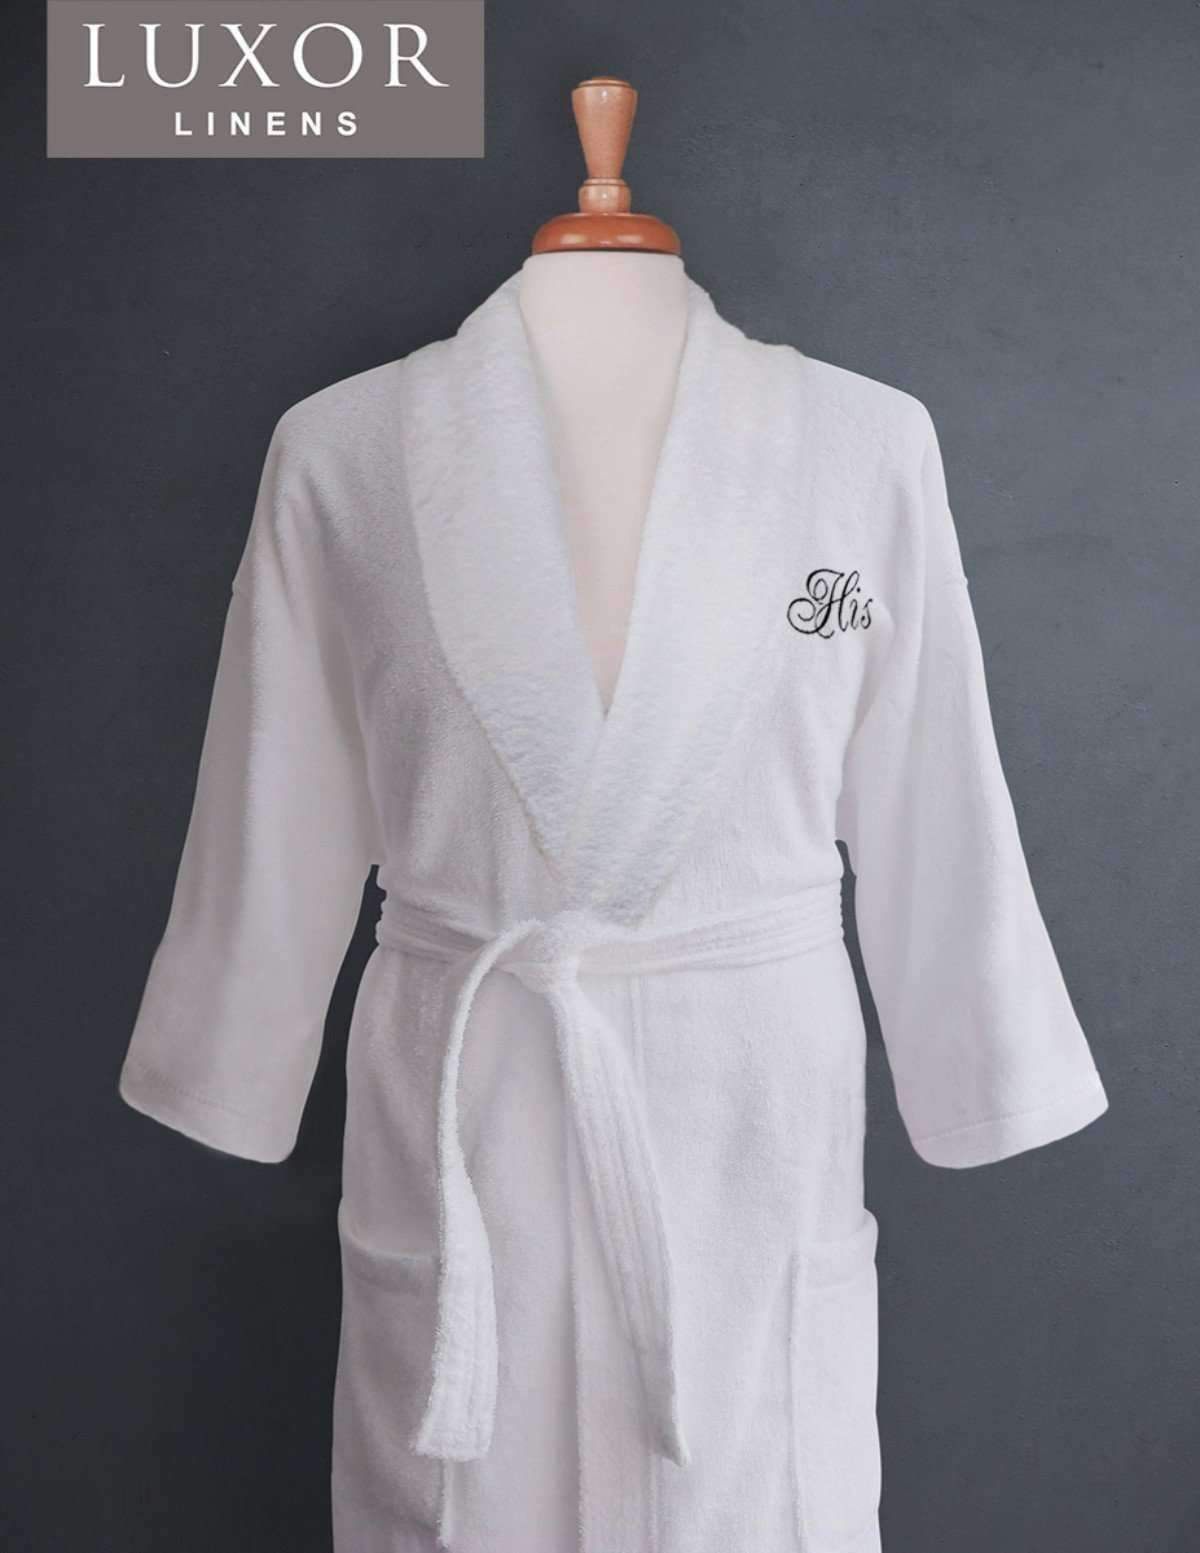 Lakeview Signature Egyptian Cotton Terry Spa Robes - Fun Gifts - Luxor Linens